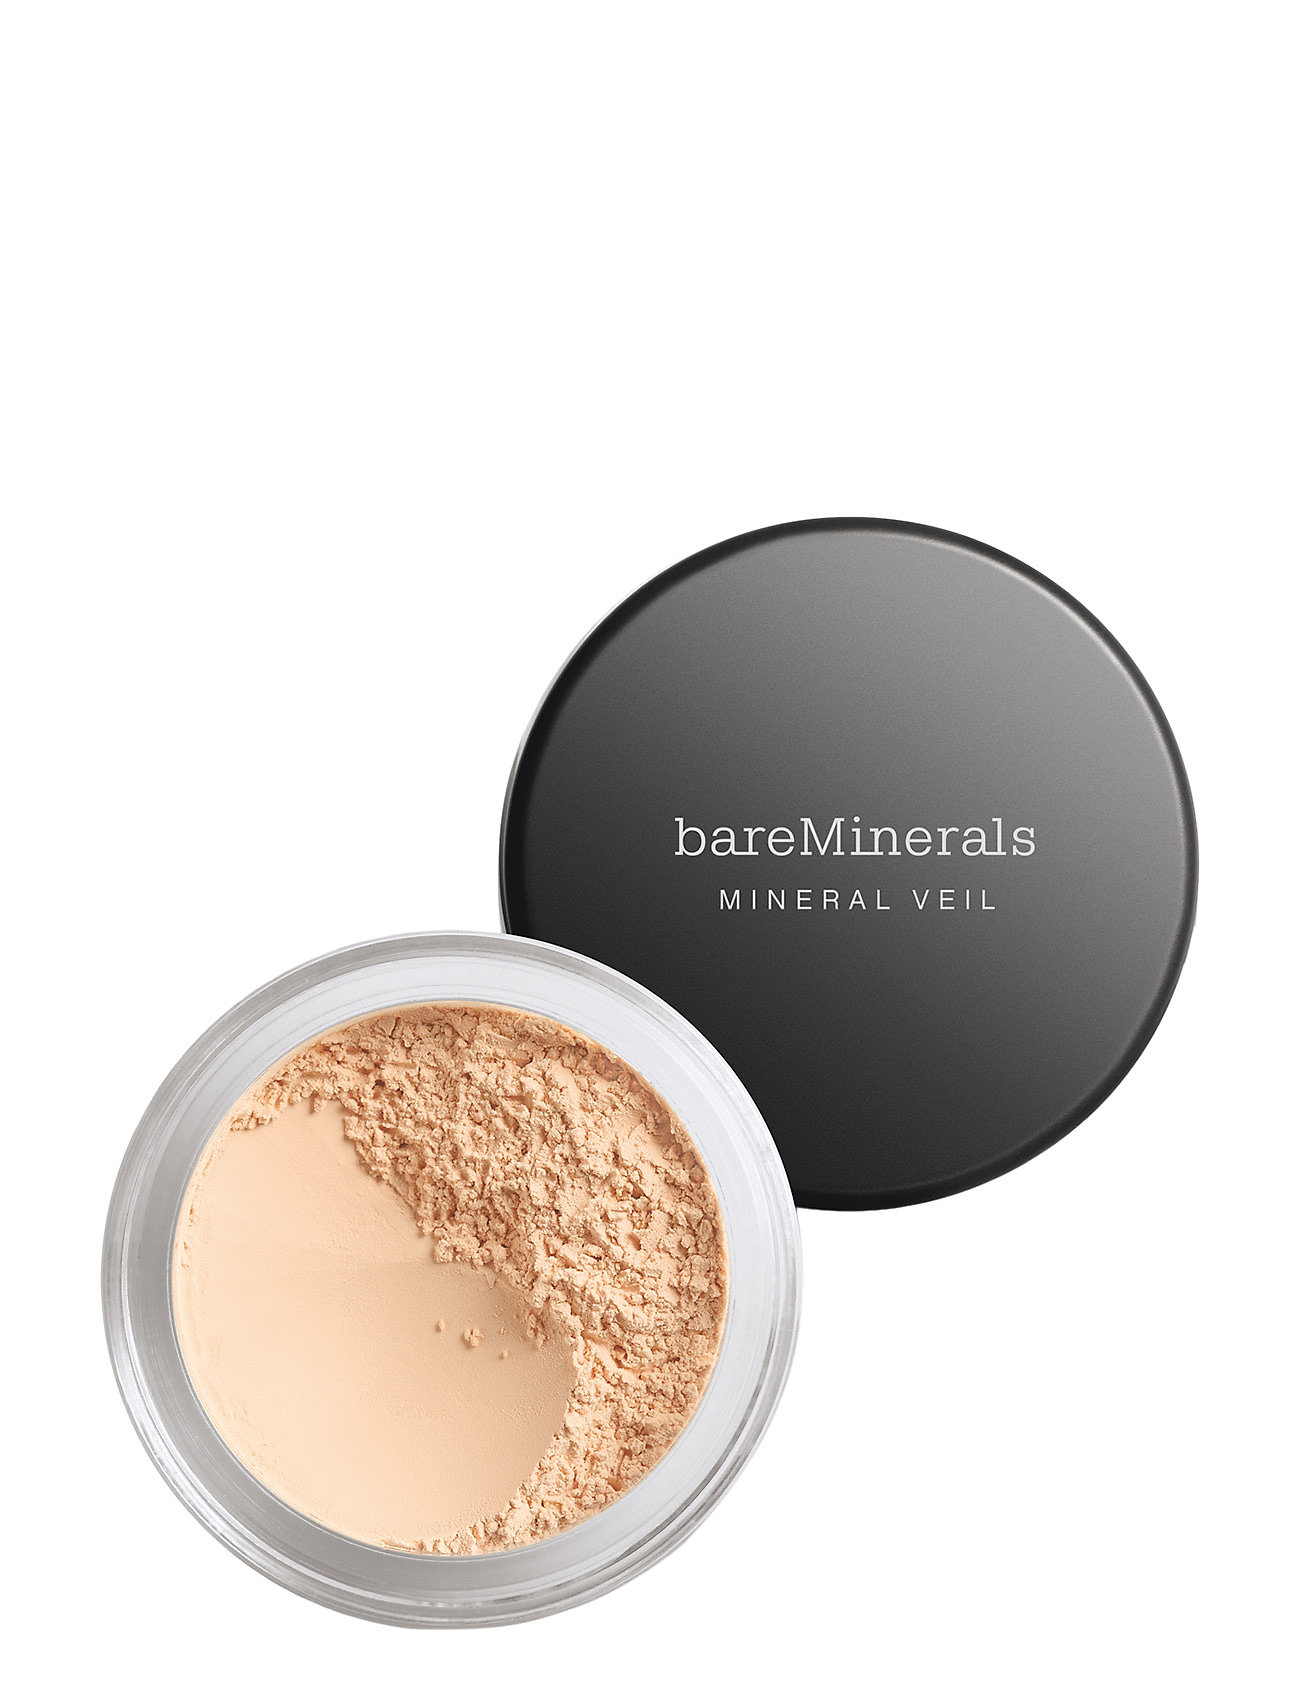 Image of Illuminating Mineral Veil Pudder Makeup BareMinerals (3409964005)